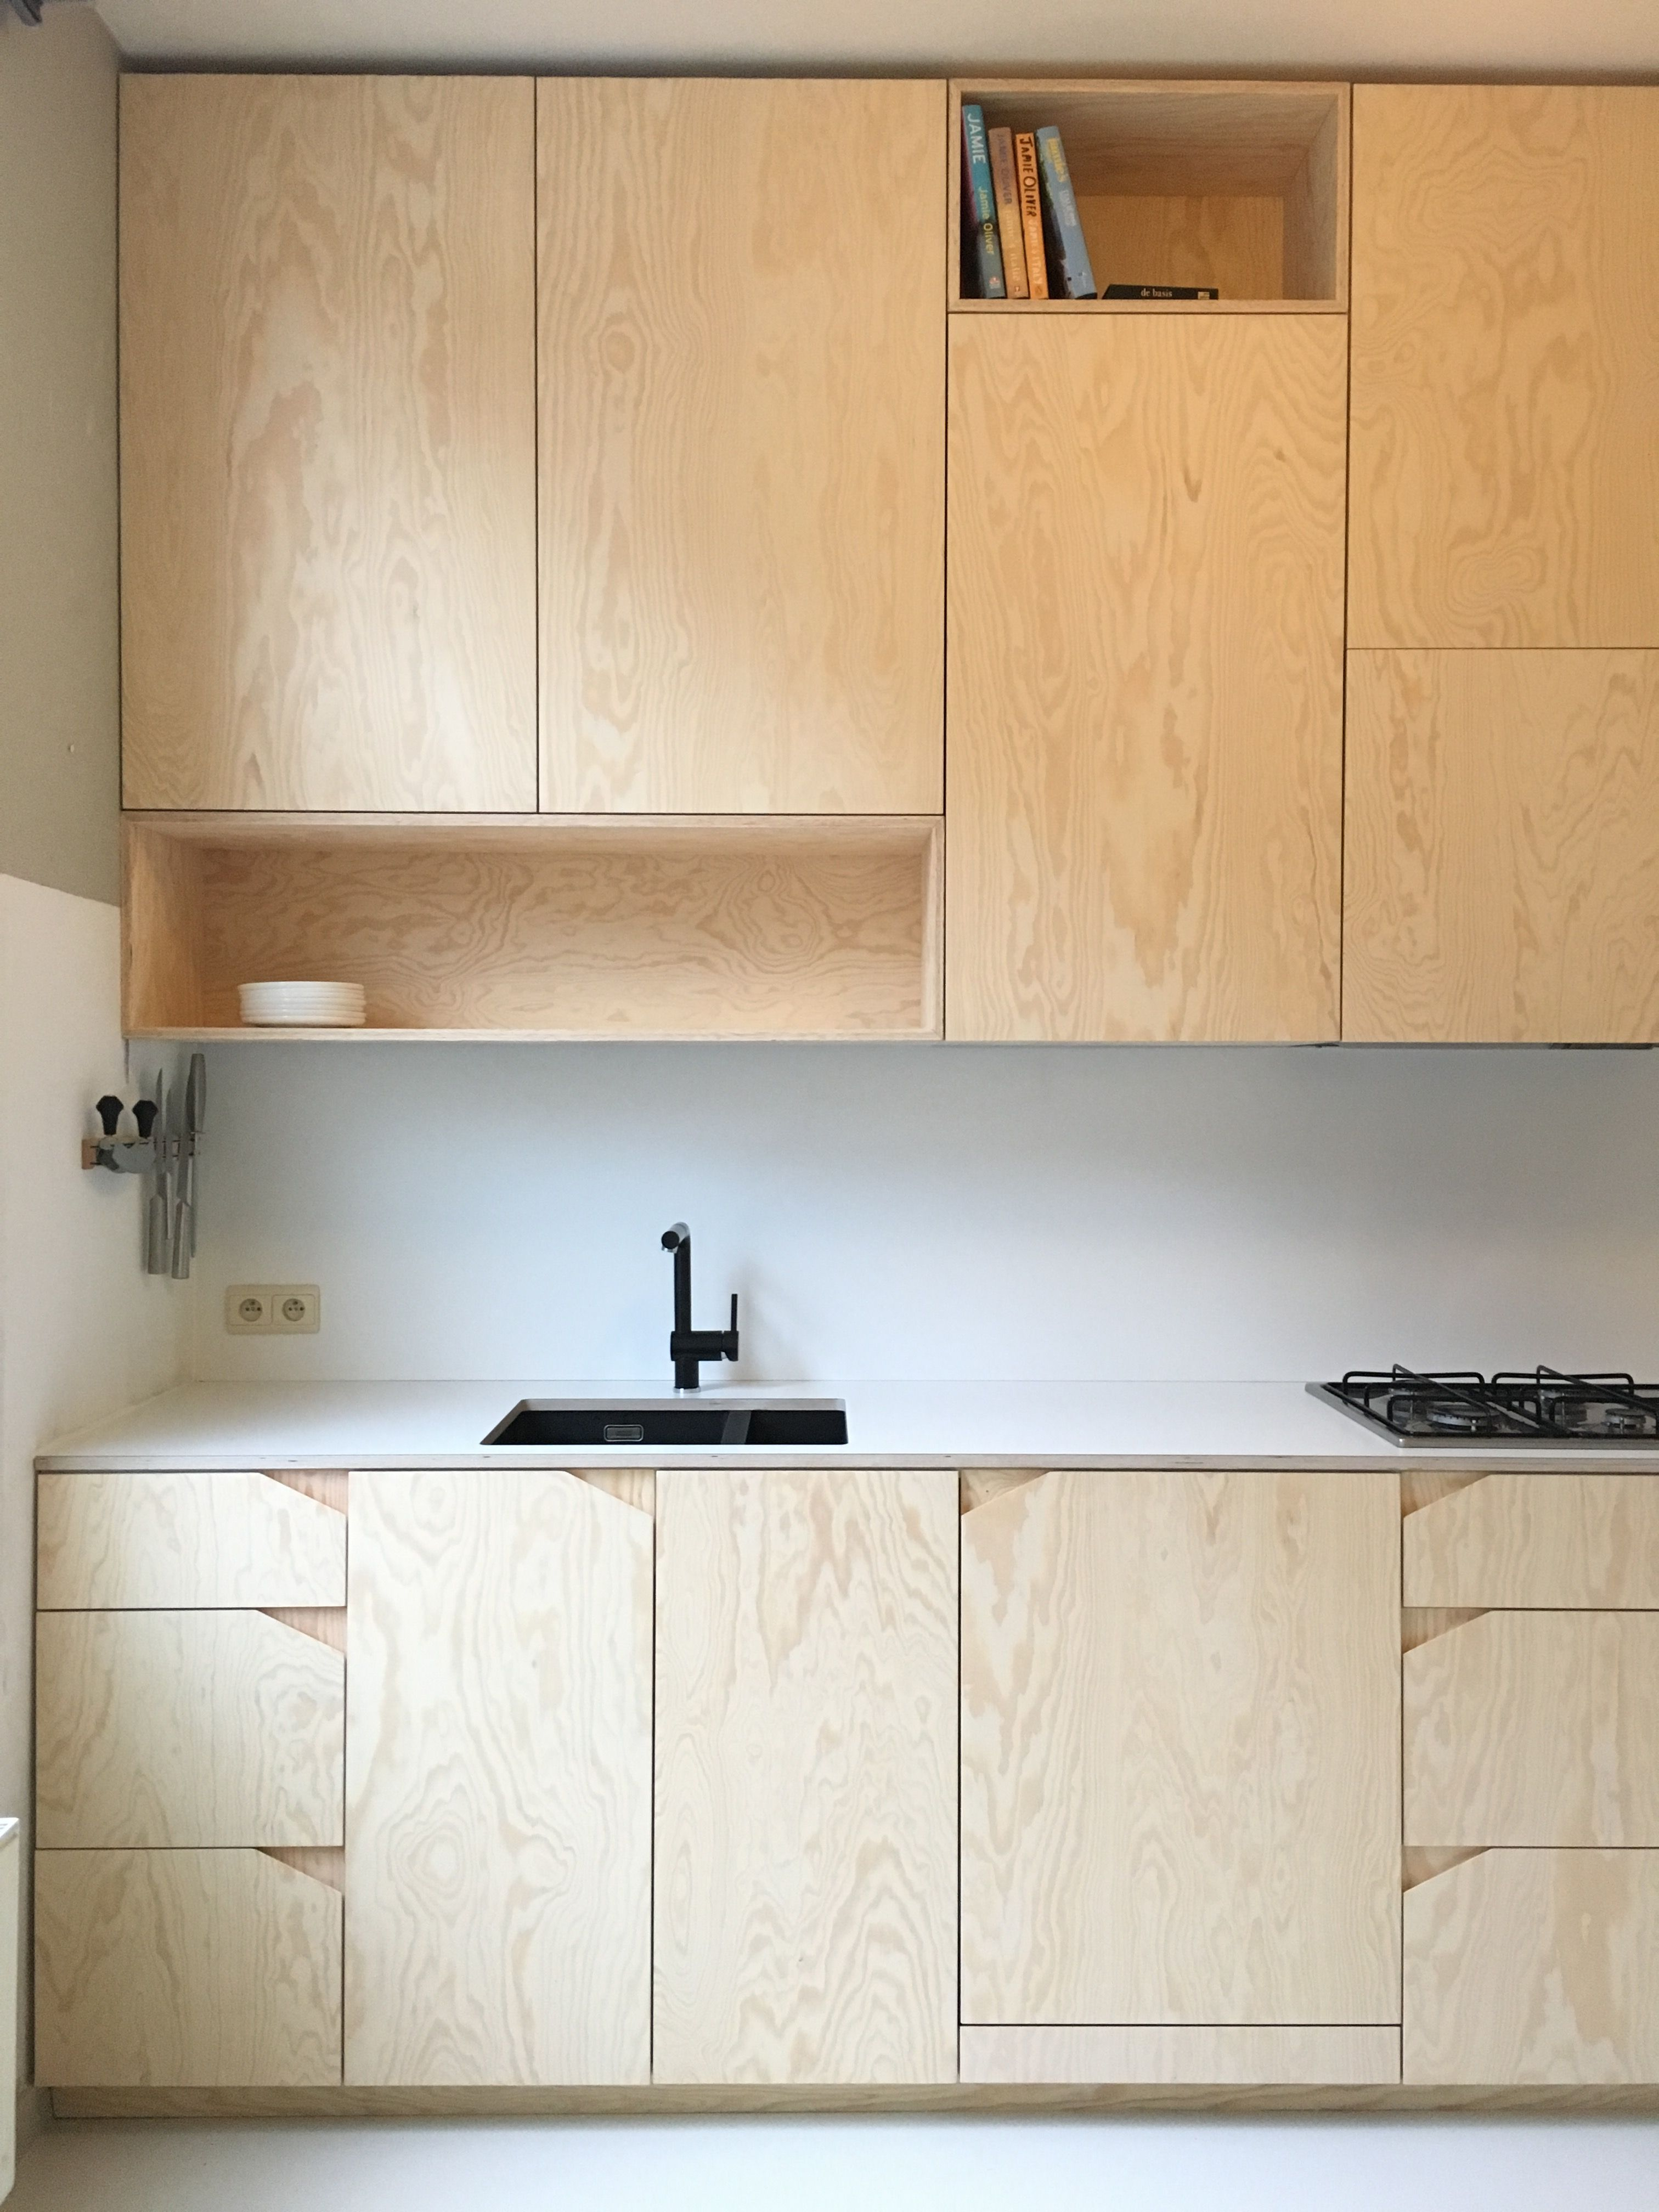 Kitchen Design Plywood Pine Black Kitchen Tap #kitchendesign